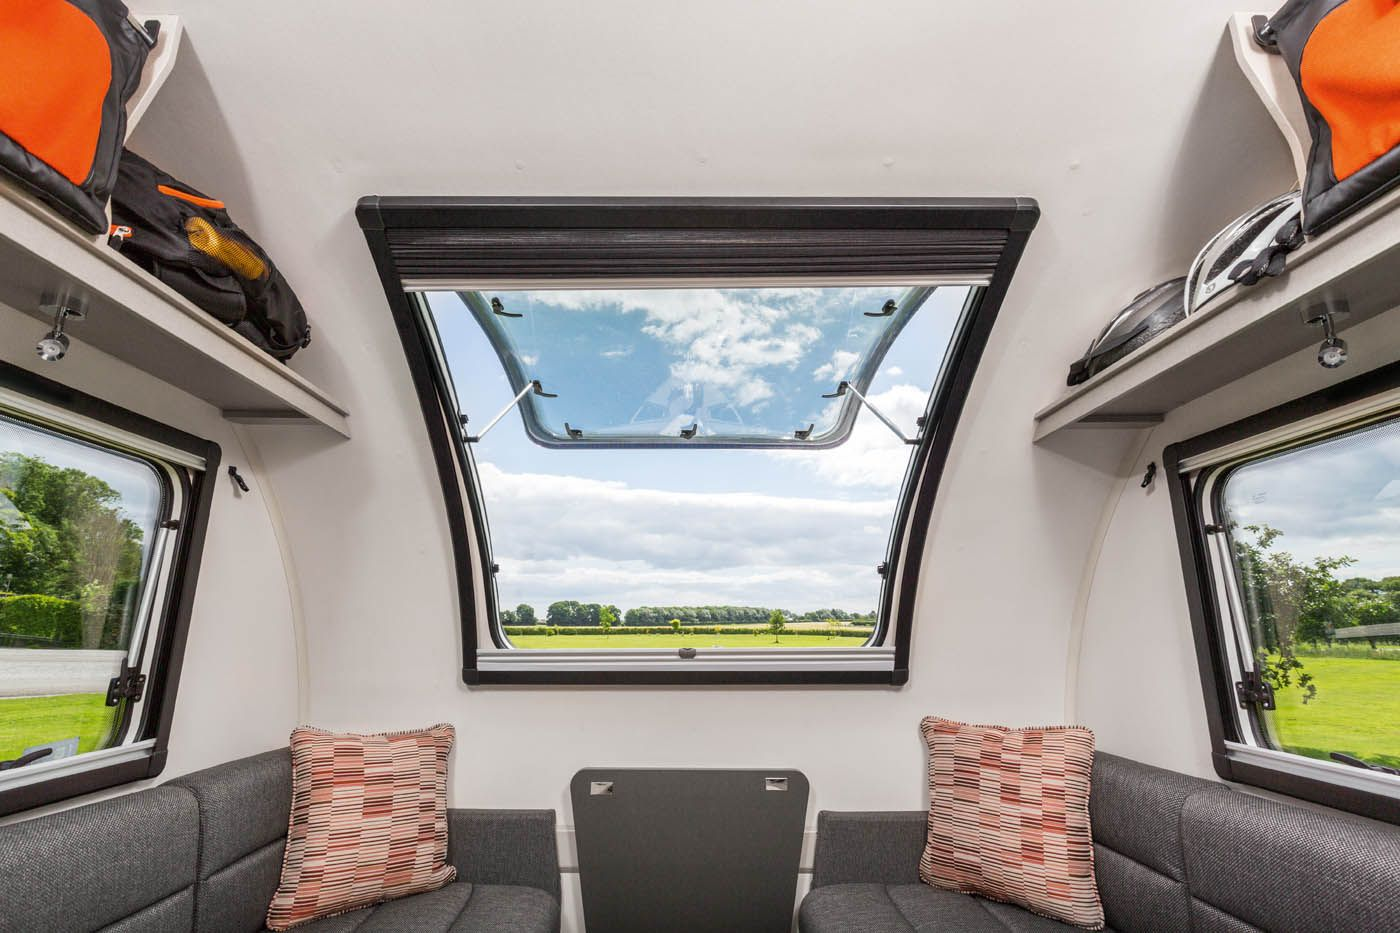 Int Basecamp Panoramic Opening Sunroof Basecamp Caravan Makeover Mobile Living